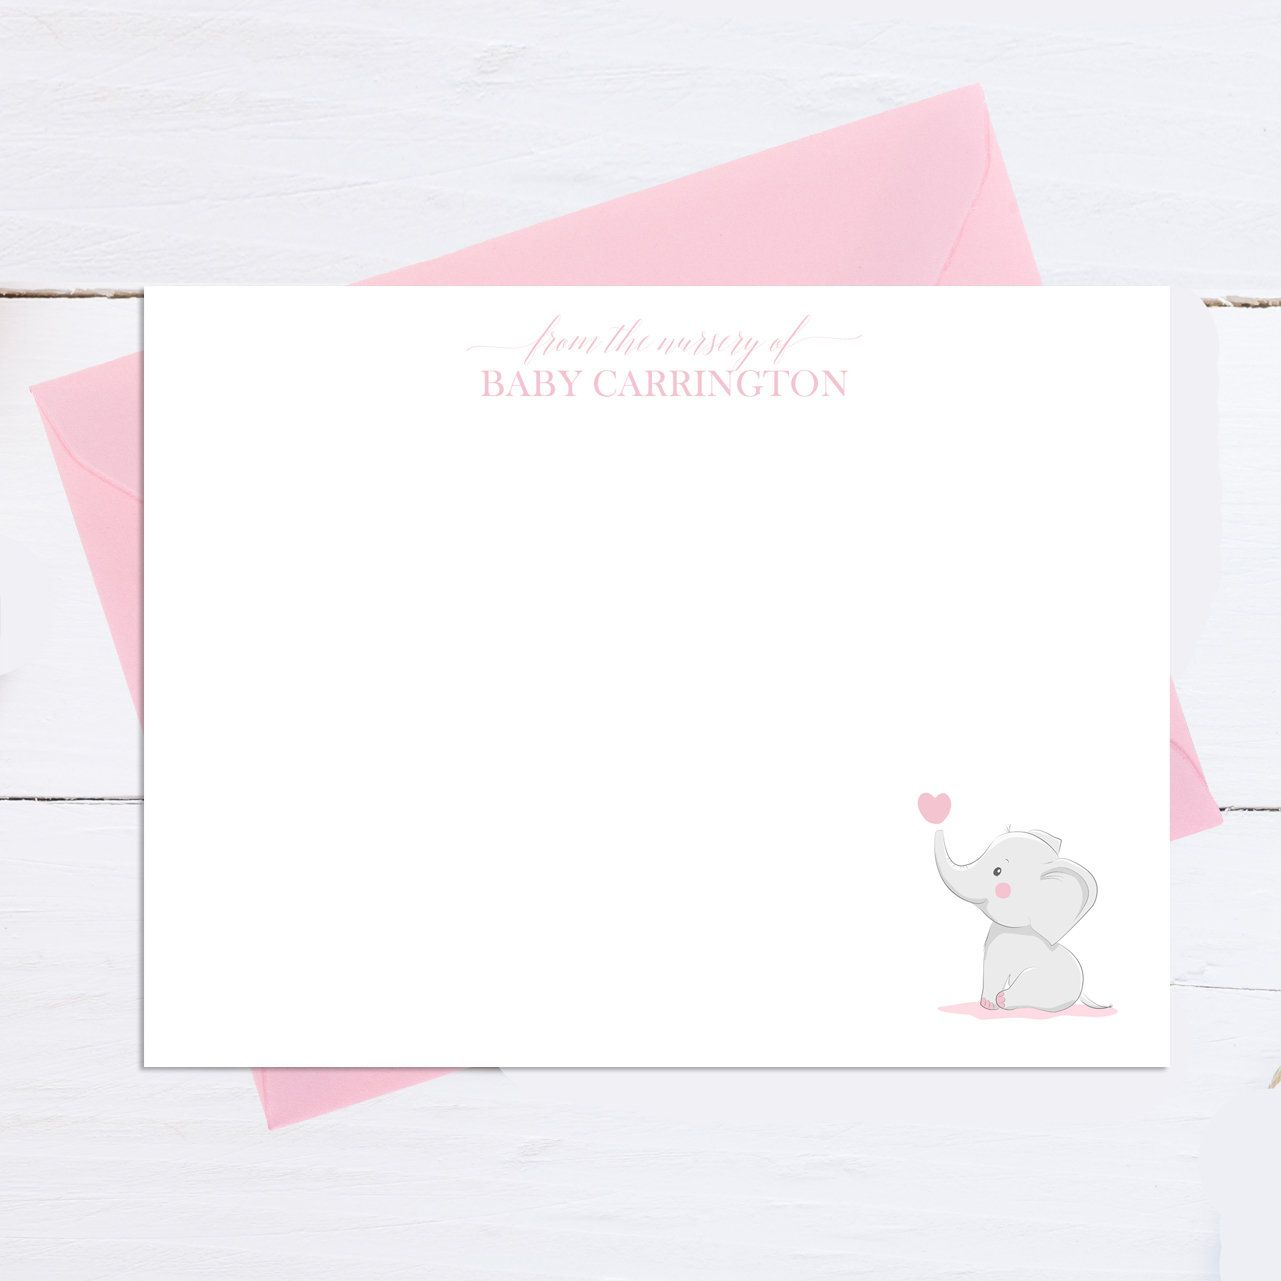 Personalized Note Cards Baby Shower Gift Baby Notecards New Baby Girl Stationery Baby Thank You Cards Pink Note Cards Stationery Set